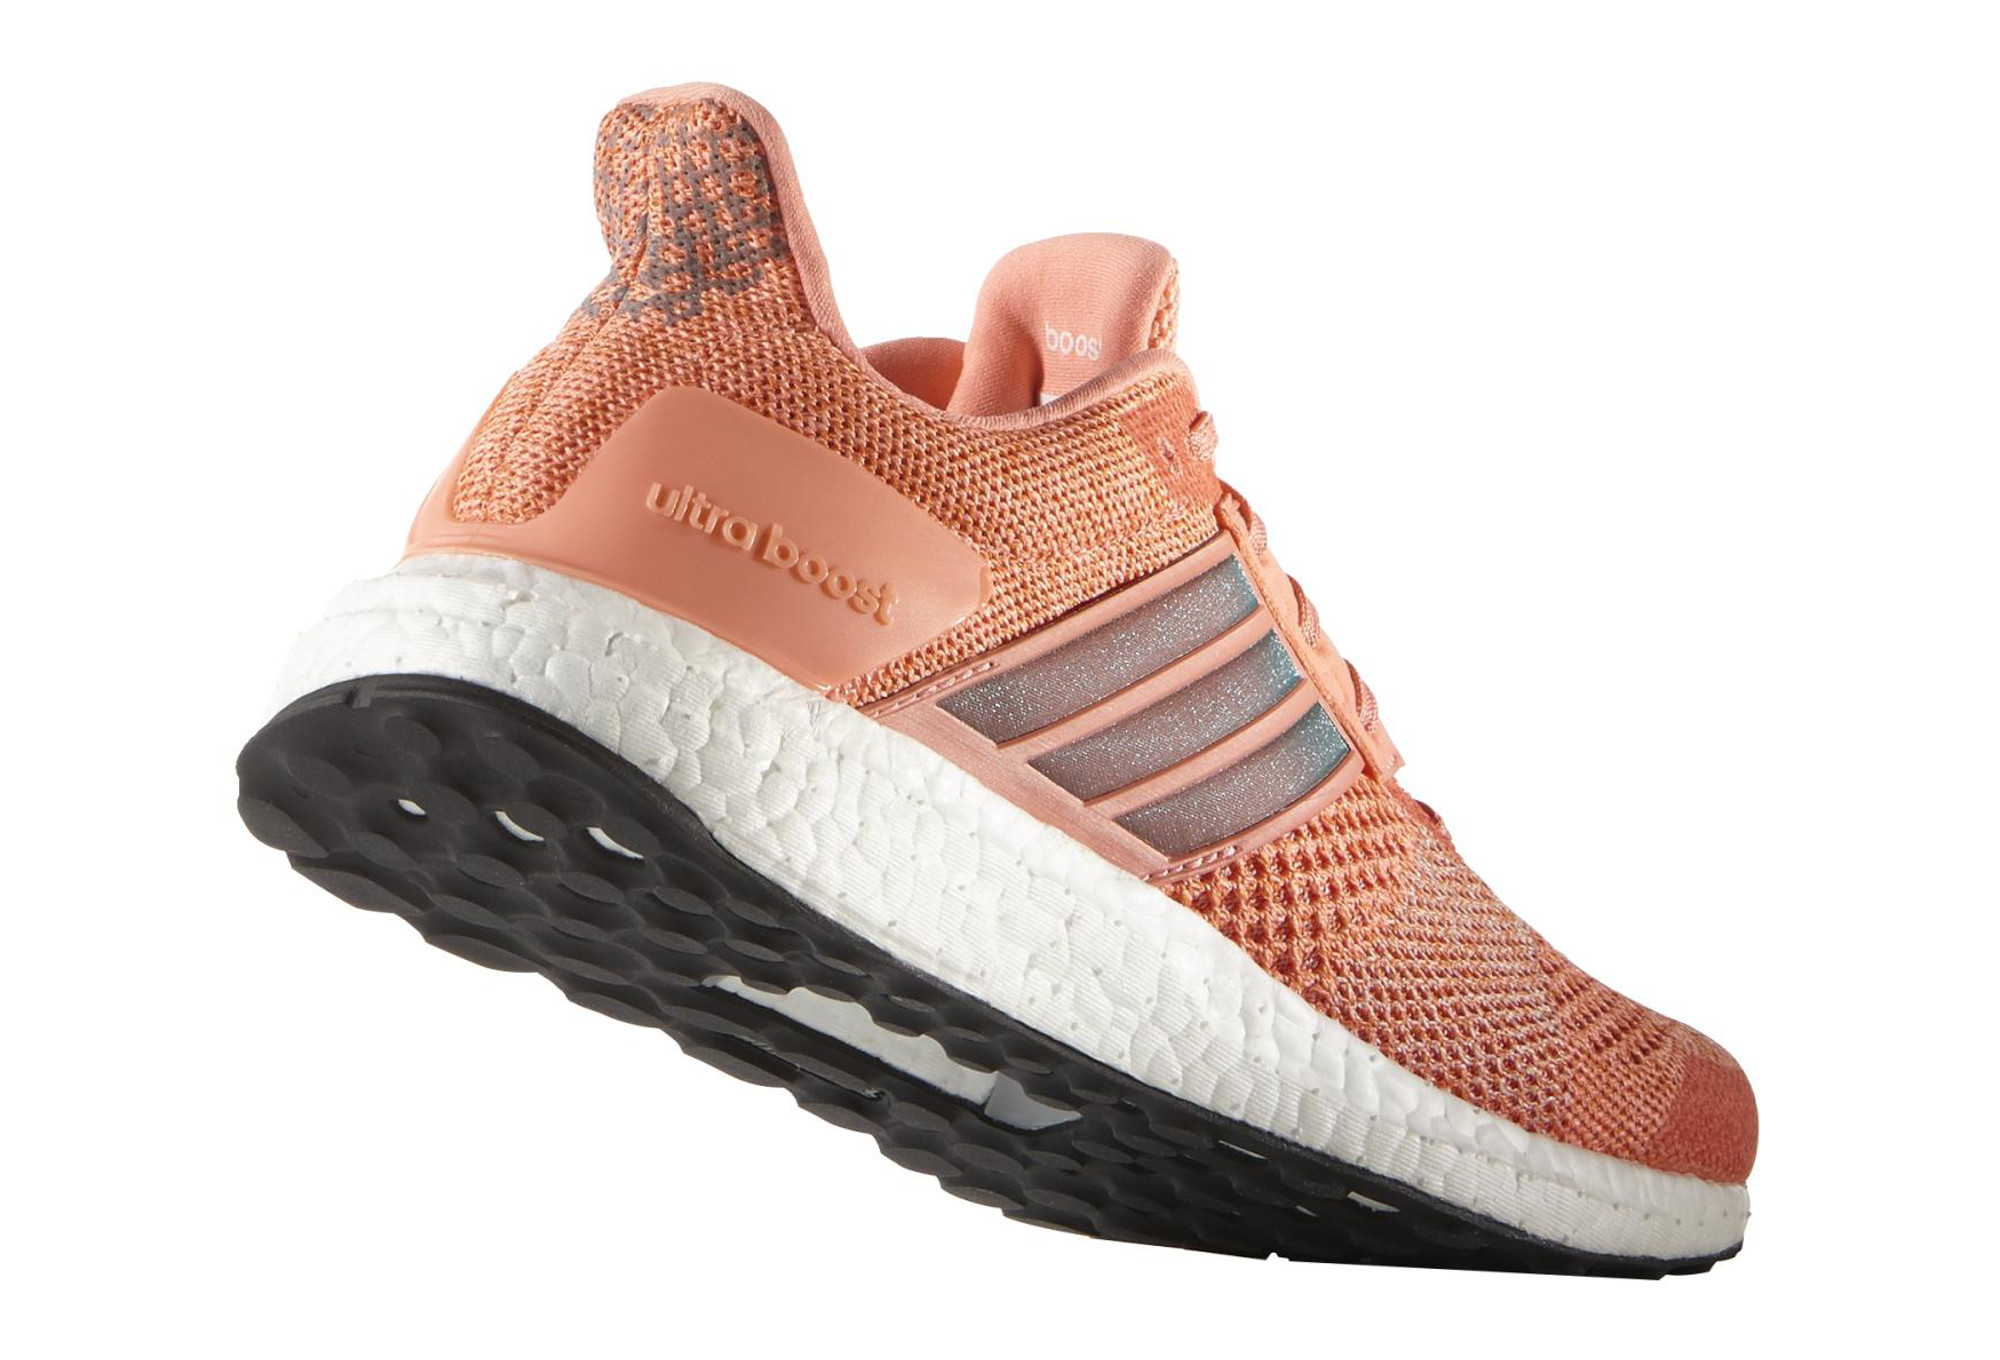 6003a2b80 adidas ULTRA BOOST ST Pair of Shoes Pink Women